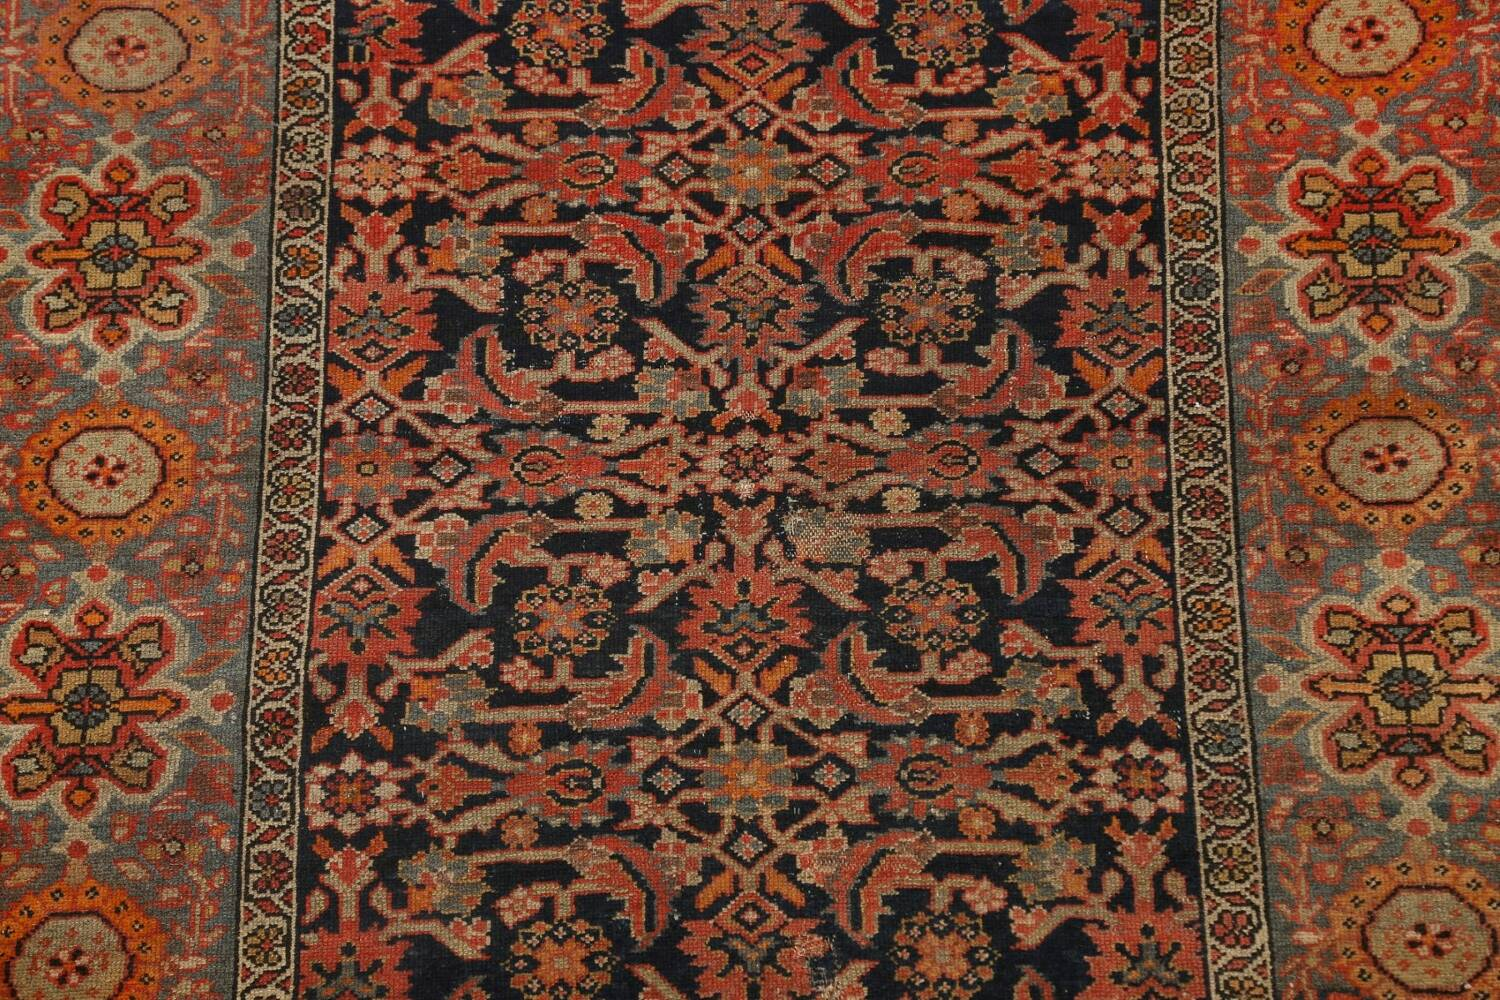 Pre-1900 Antique Vegetable Dye Malayer Persian Area Rug 4x6 image 4